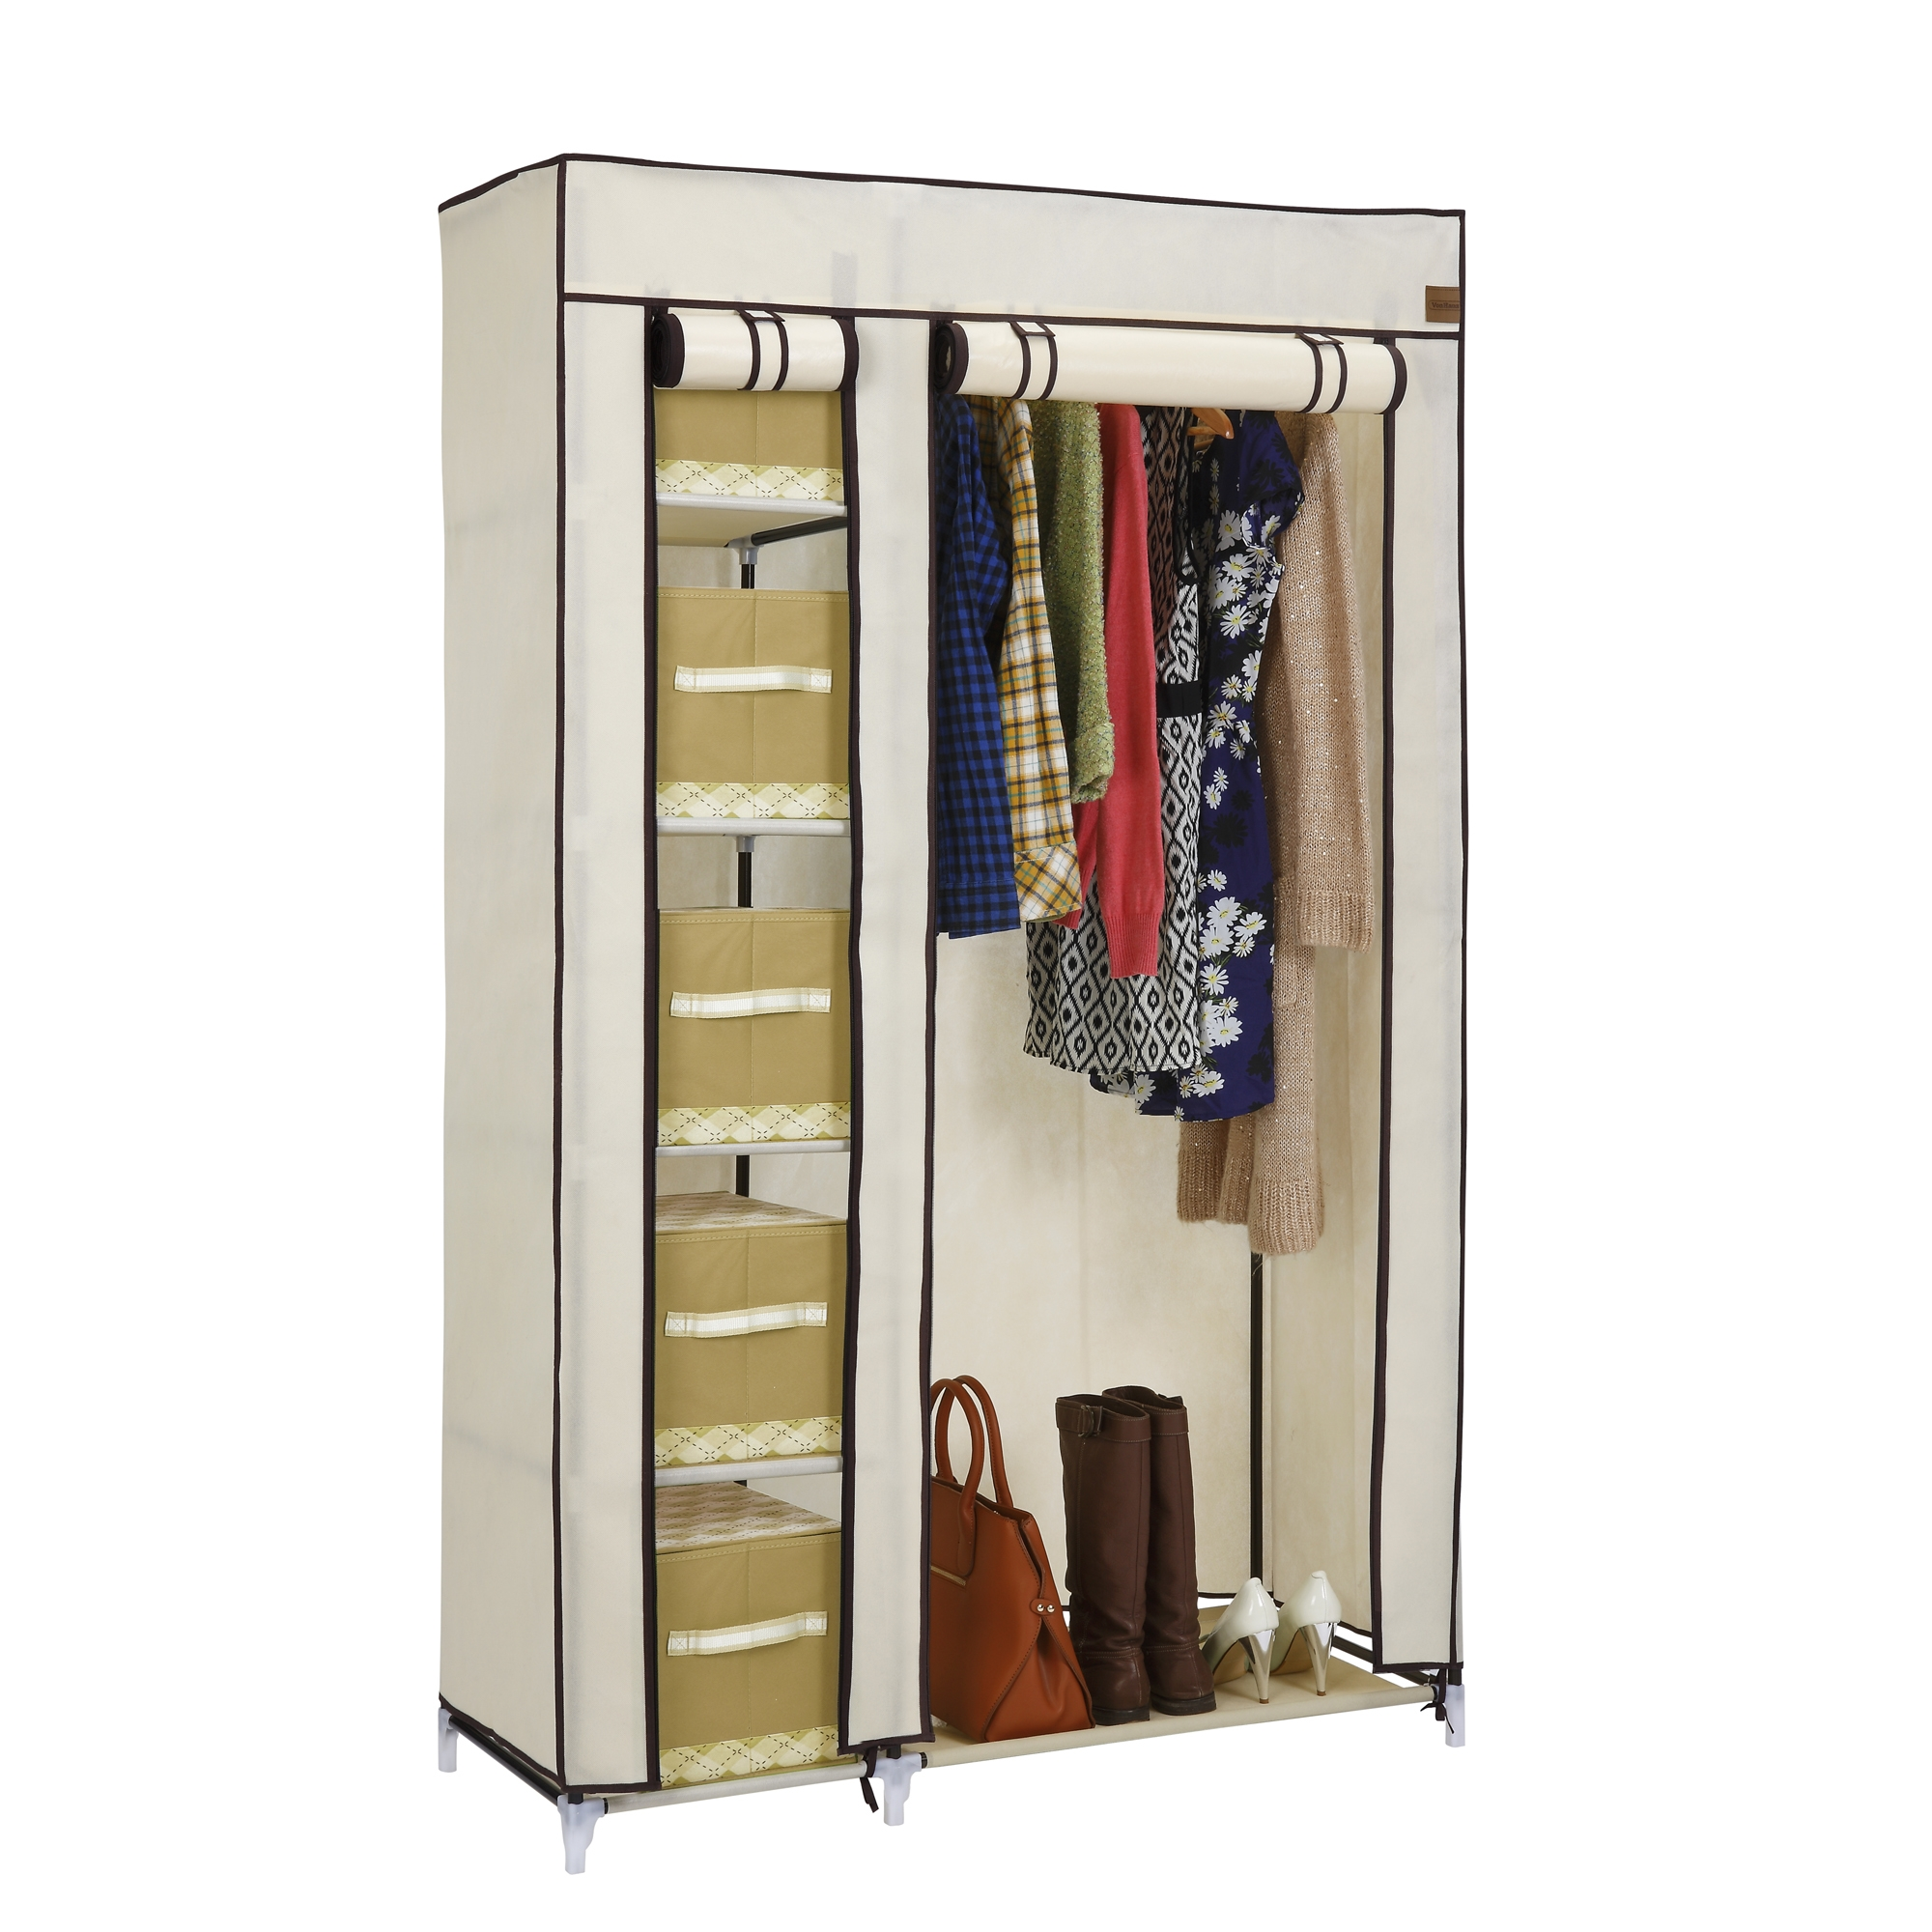 Featured Image of Wardrobe Double Hanging Rail